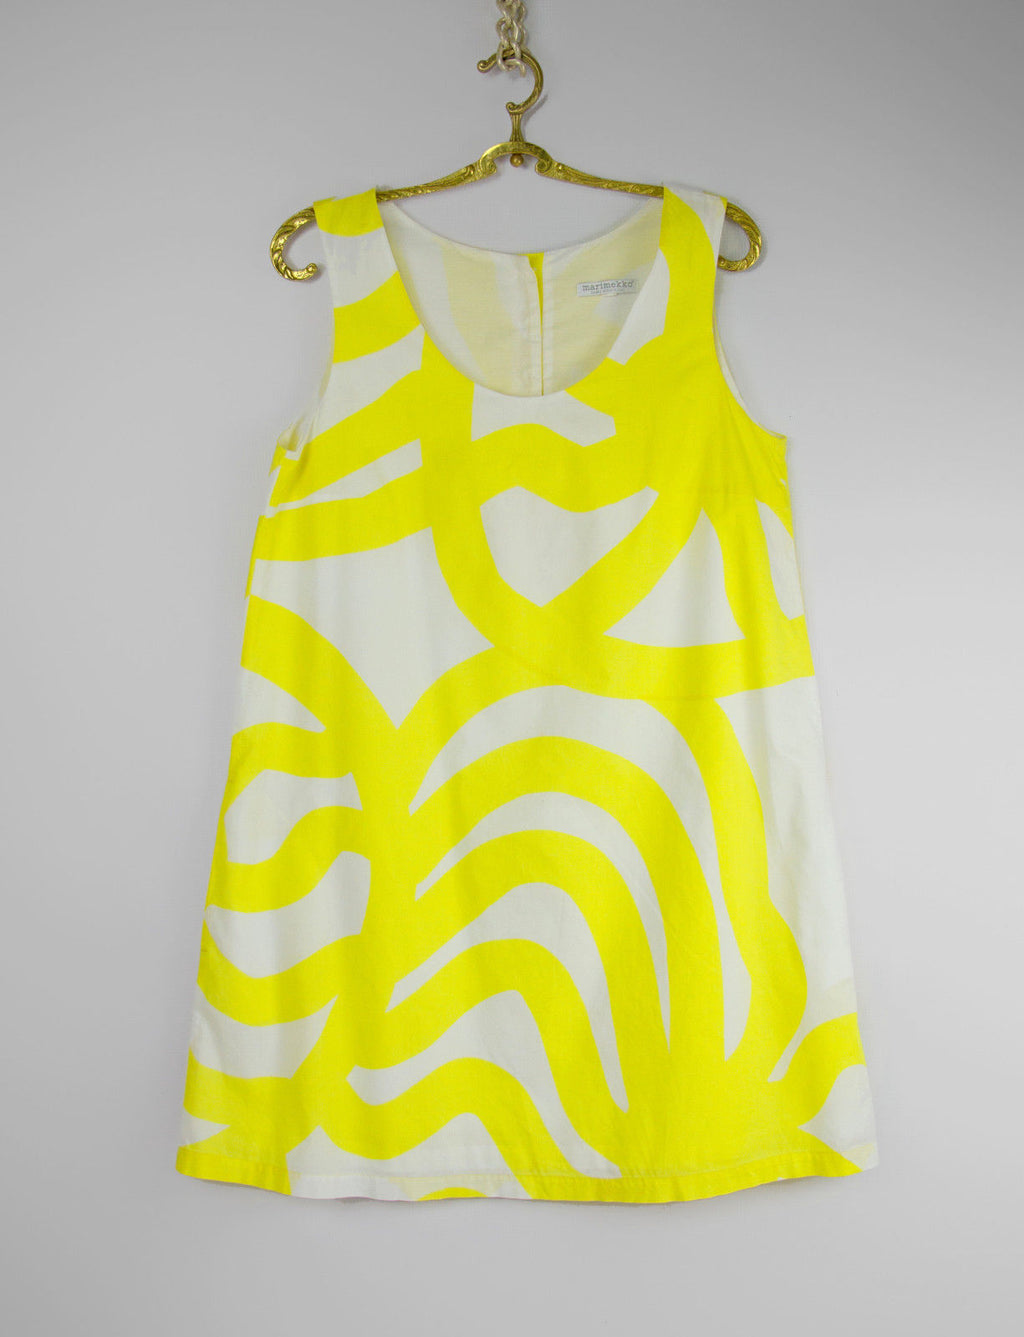 MARIMEKKO X Samu Jussi Koski Cotton Yellow Short Dress US 10, EU 38, UK 12 - secondfirst